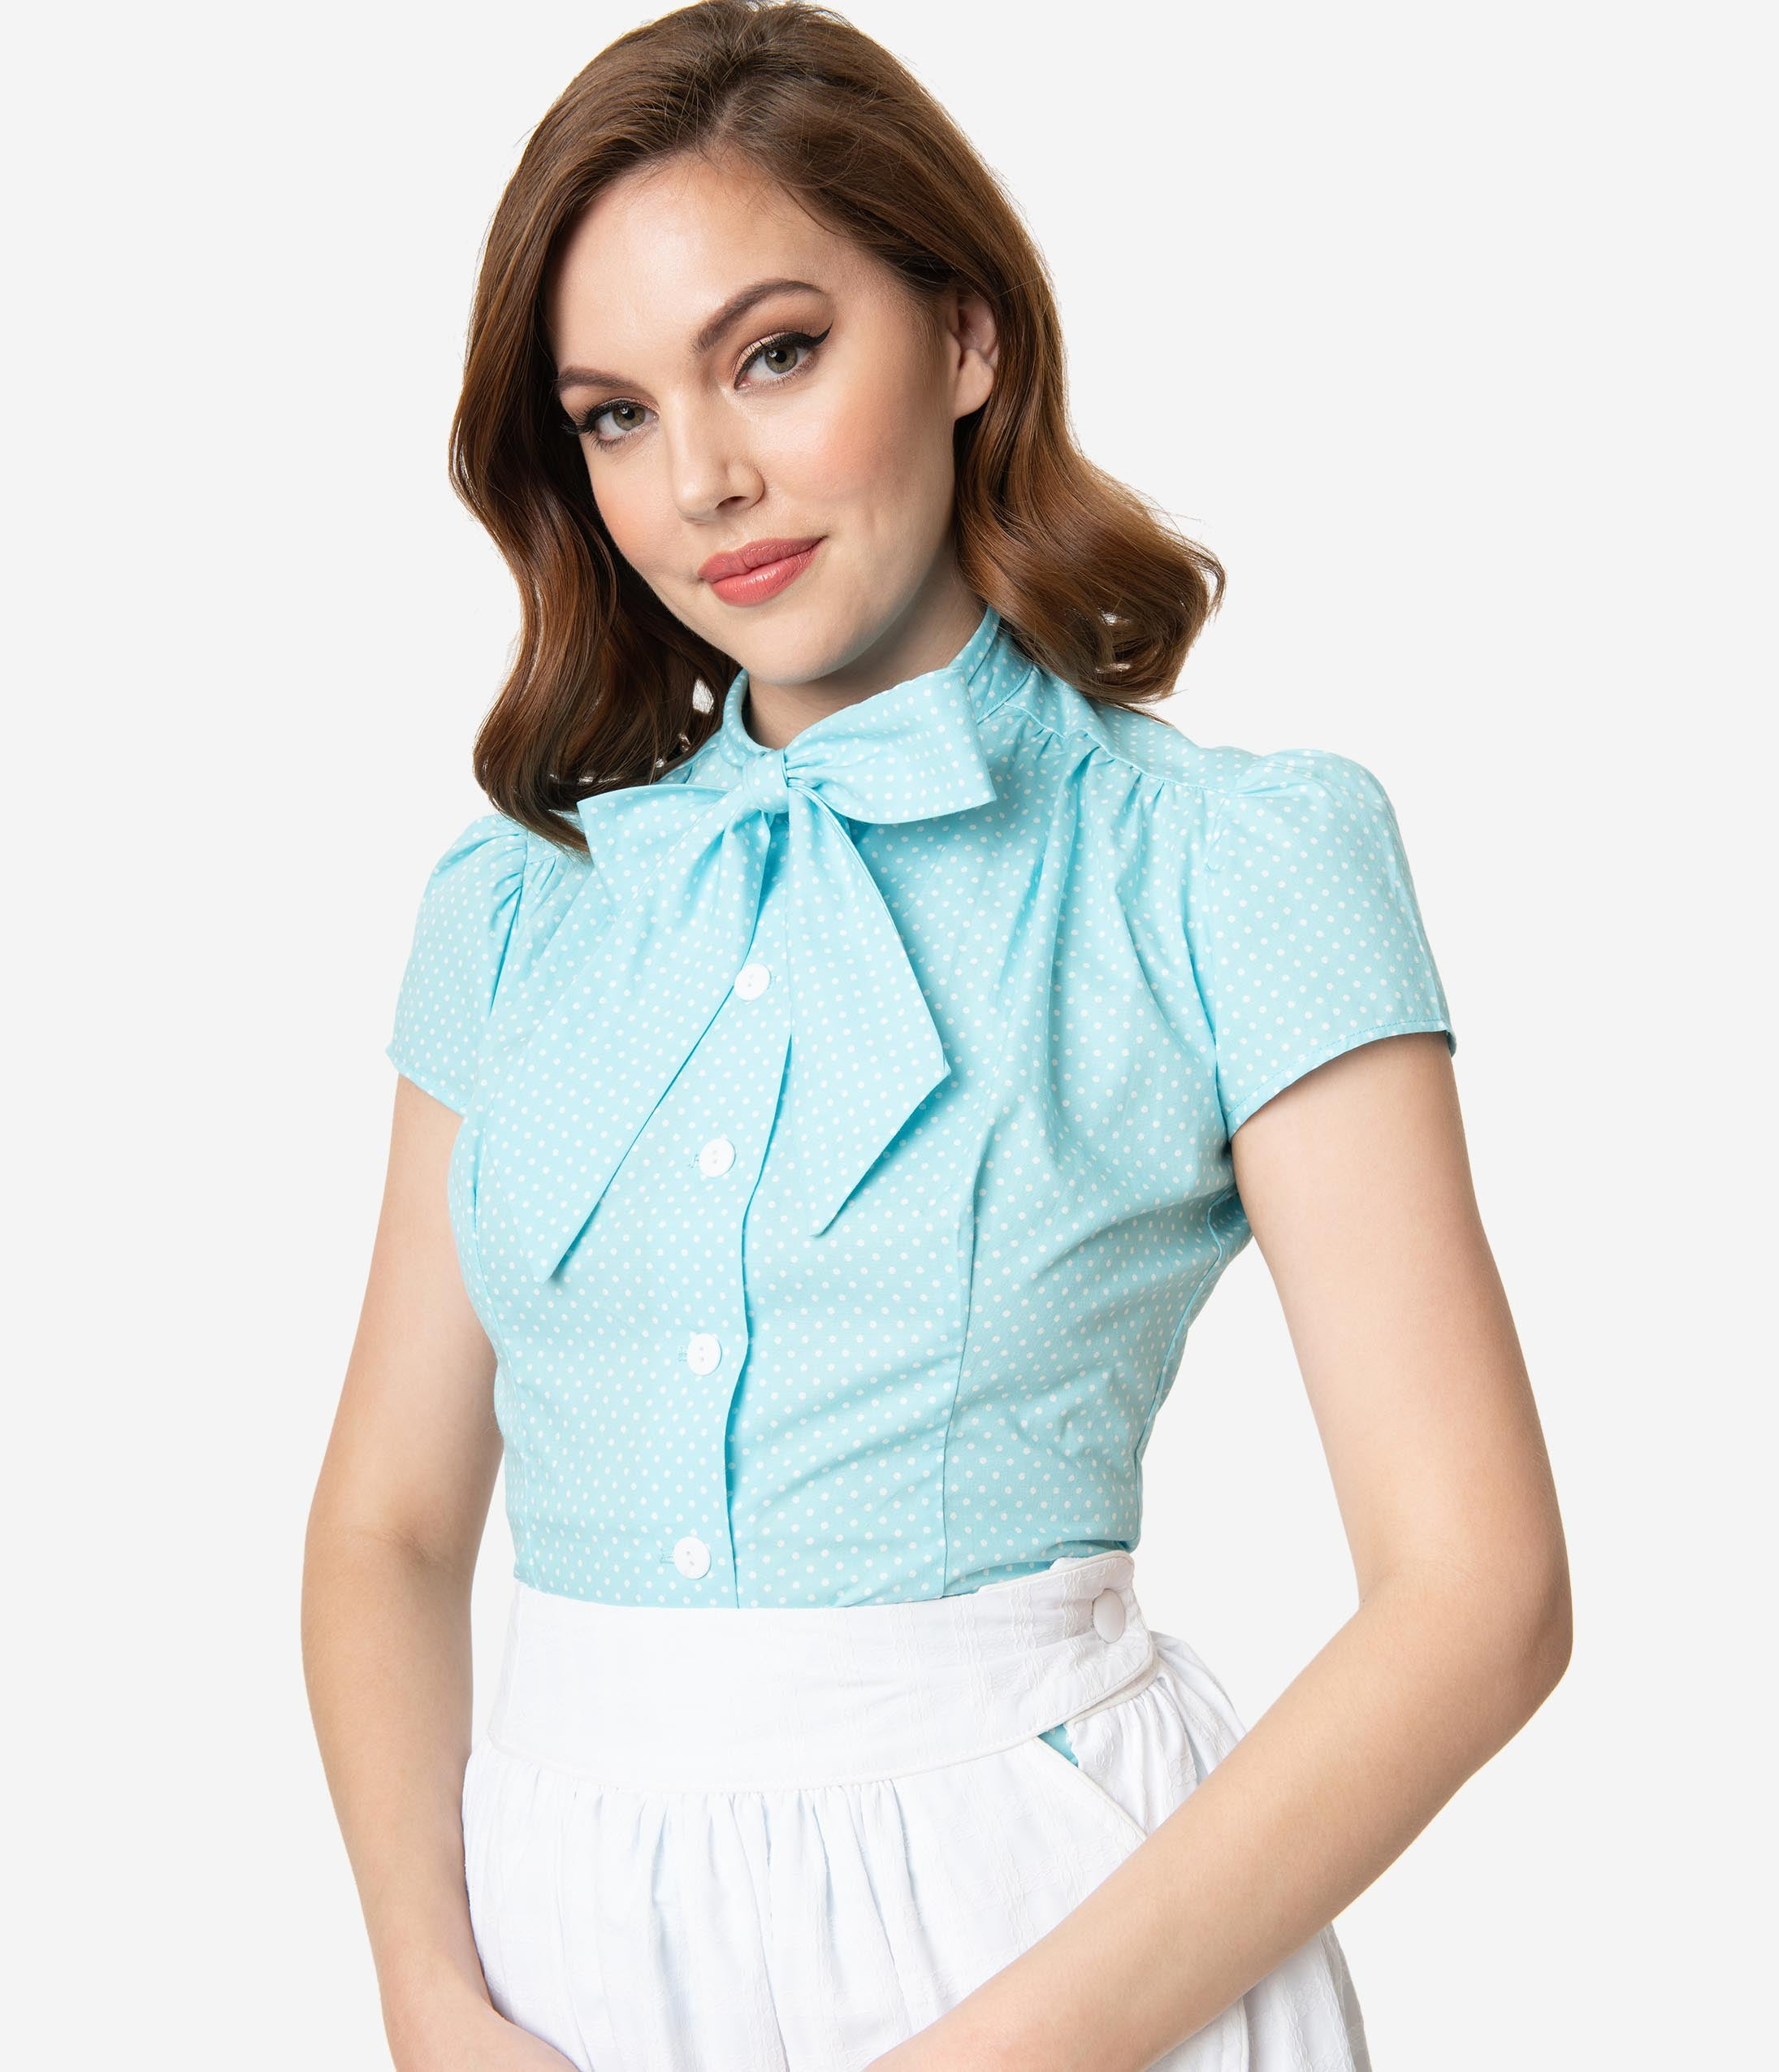 1950s Rockabilly & Pin Up Tops, Blouses, Shirts Retro Style Aqua  White Pin Dot Cap Sleeve Estelle Blouse $68.00 AT vintagedancer.com